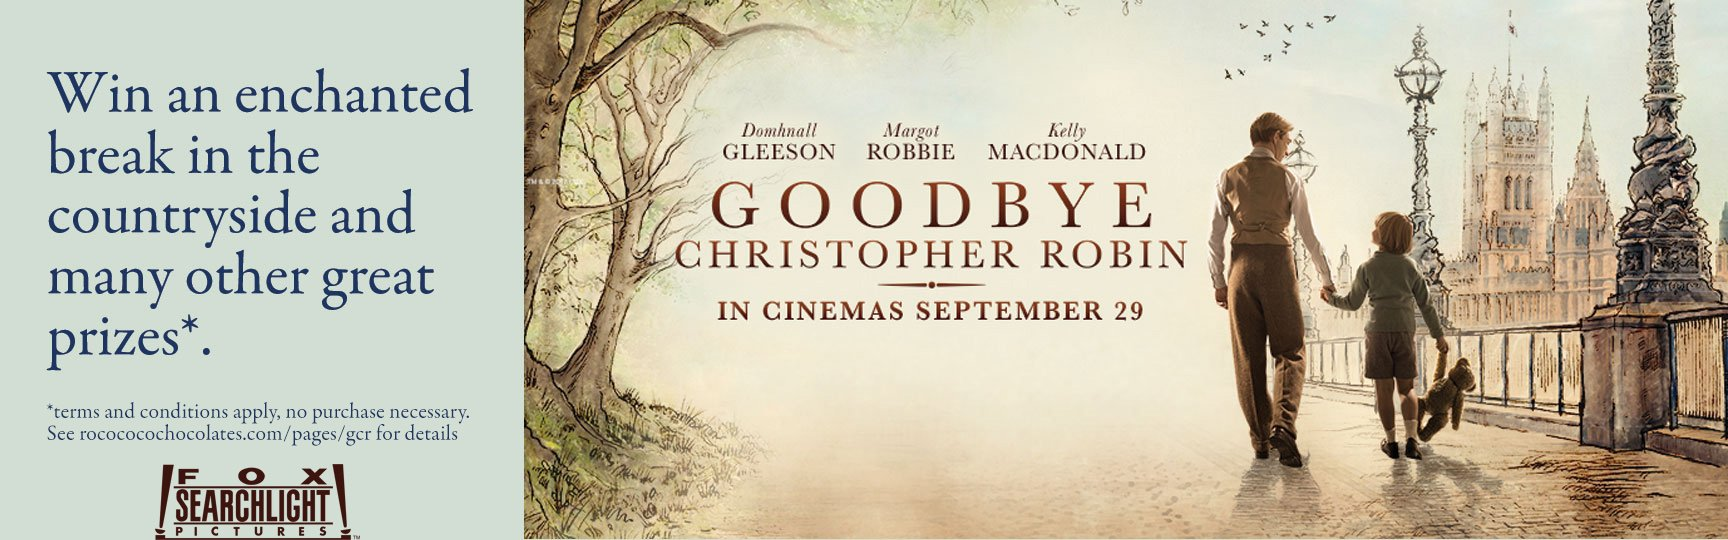 Goodbye Christopher Robin Competition